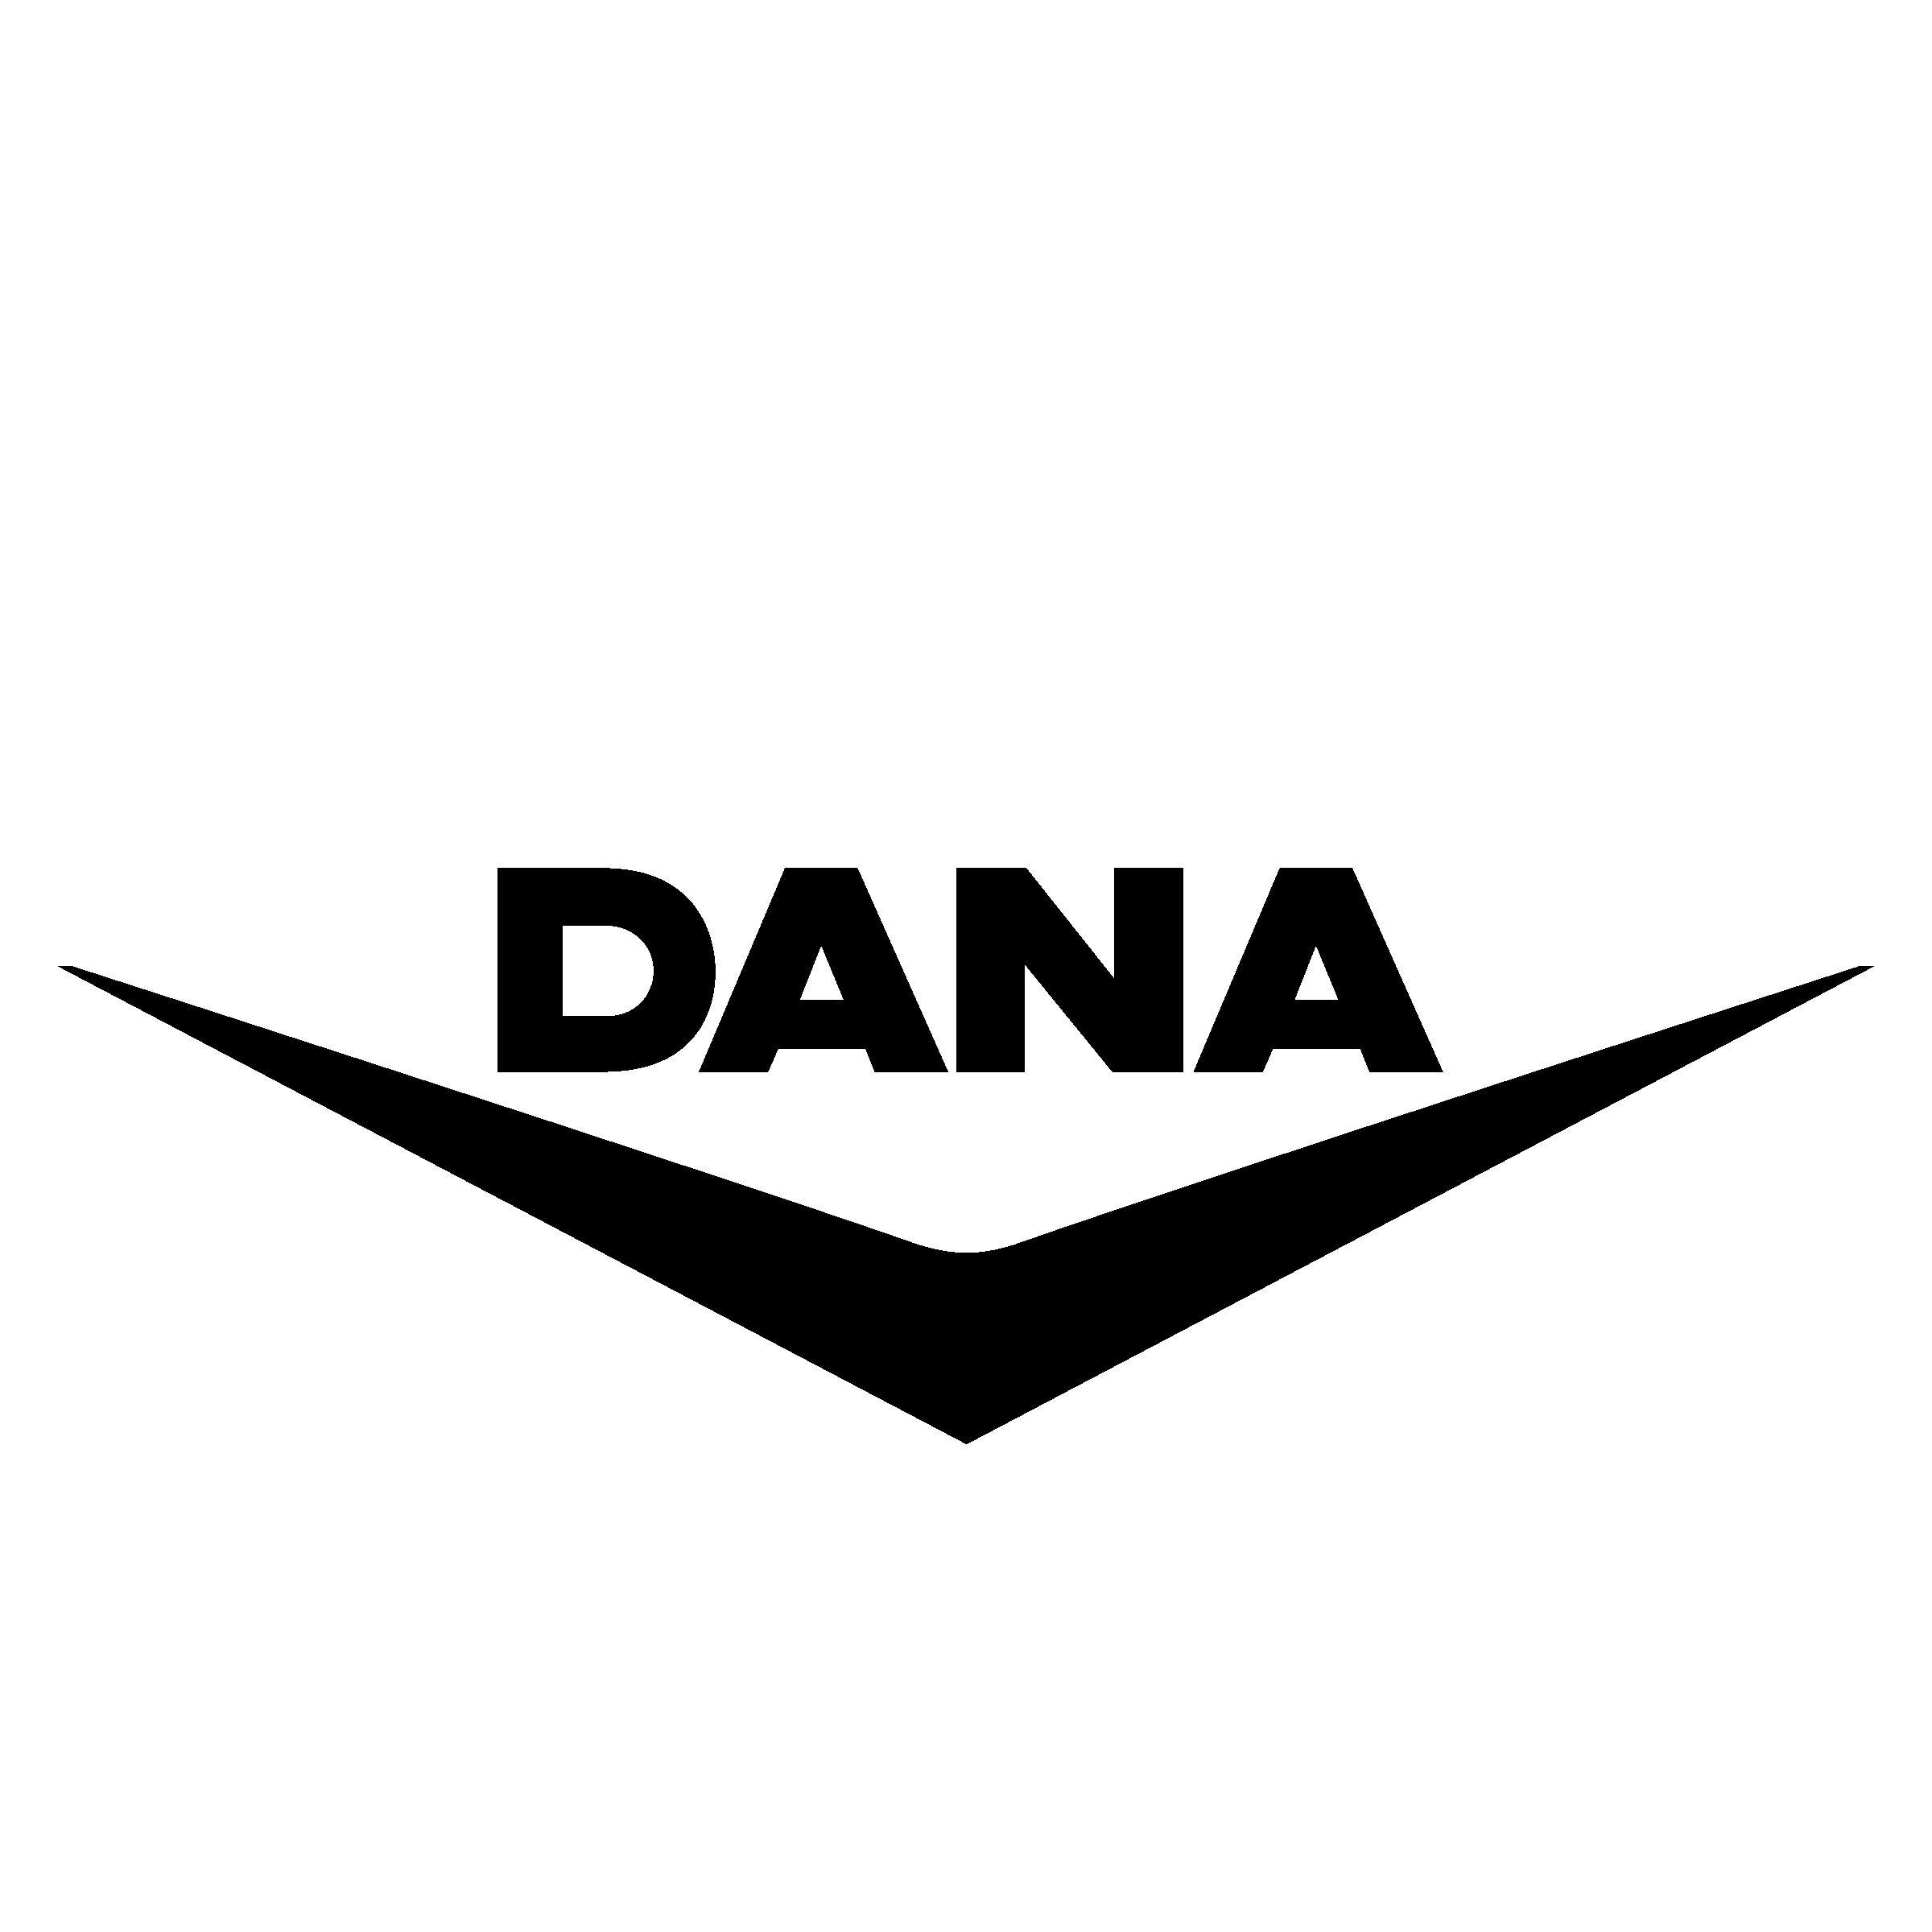 dana logo png transparent svg vector freebie supply dana logo png transparent svg vector